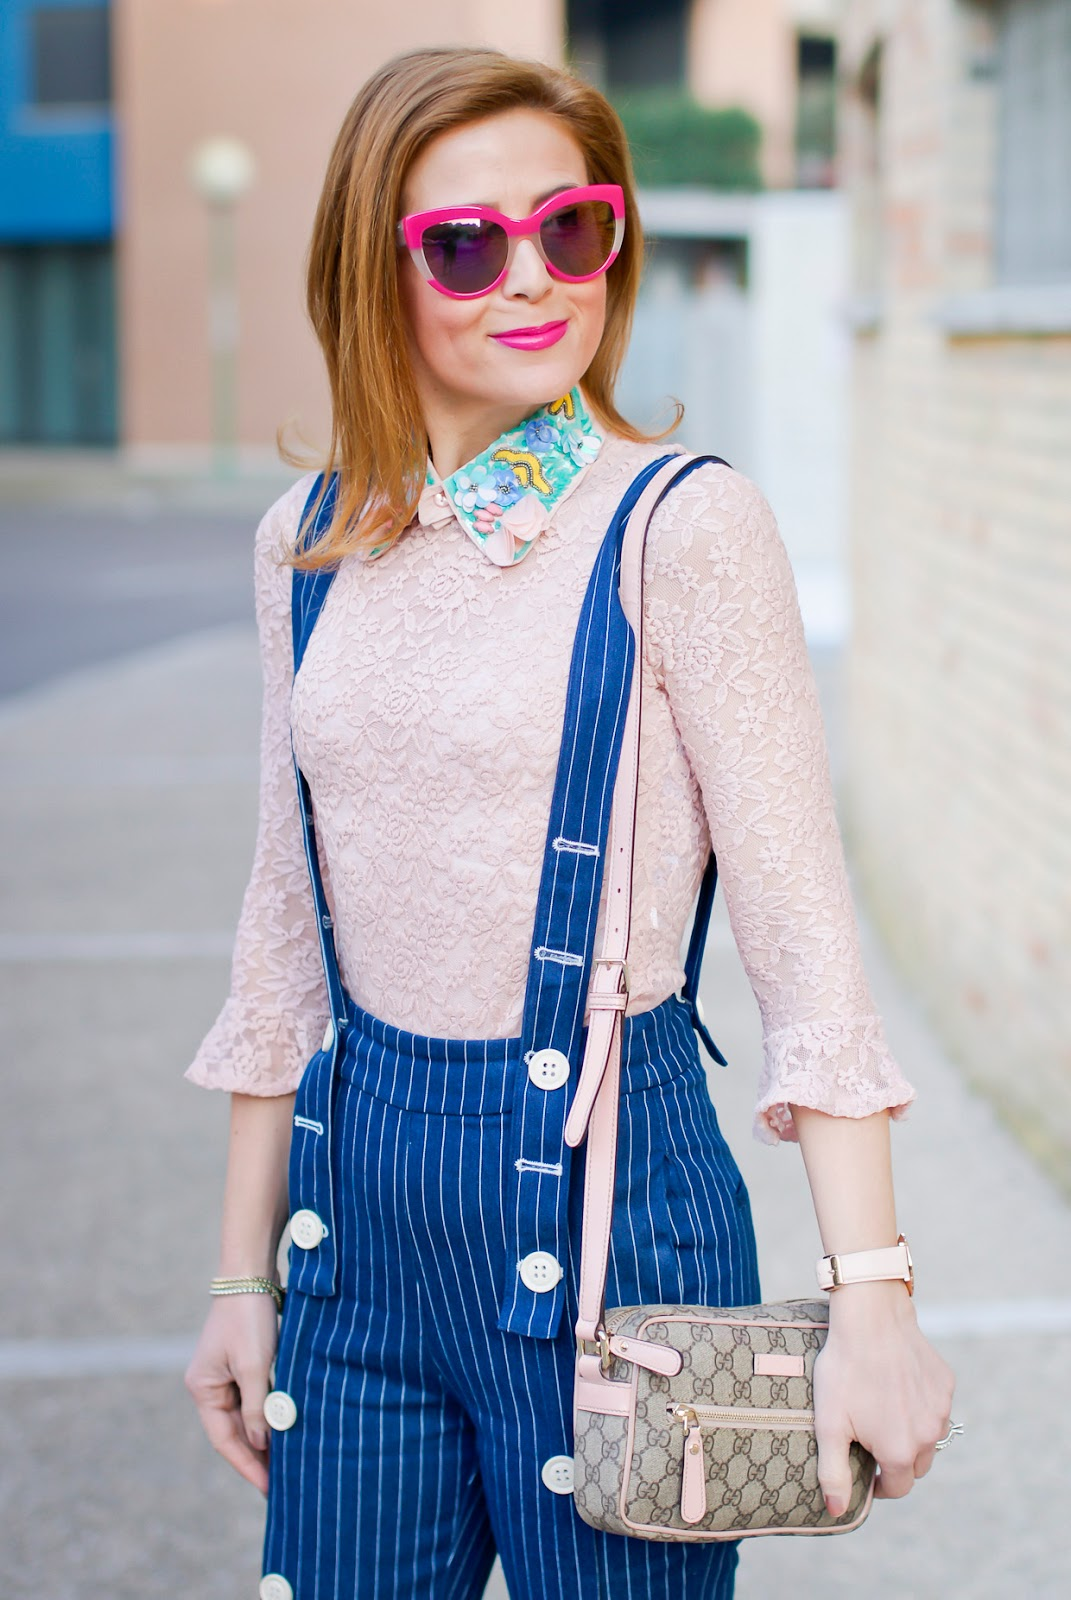 Metisu Pinstripe trousers with braces, Gucci mini bag on Fashion and Cookies fashion blog, fashion blogger style